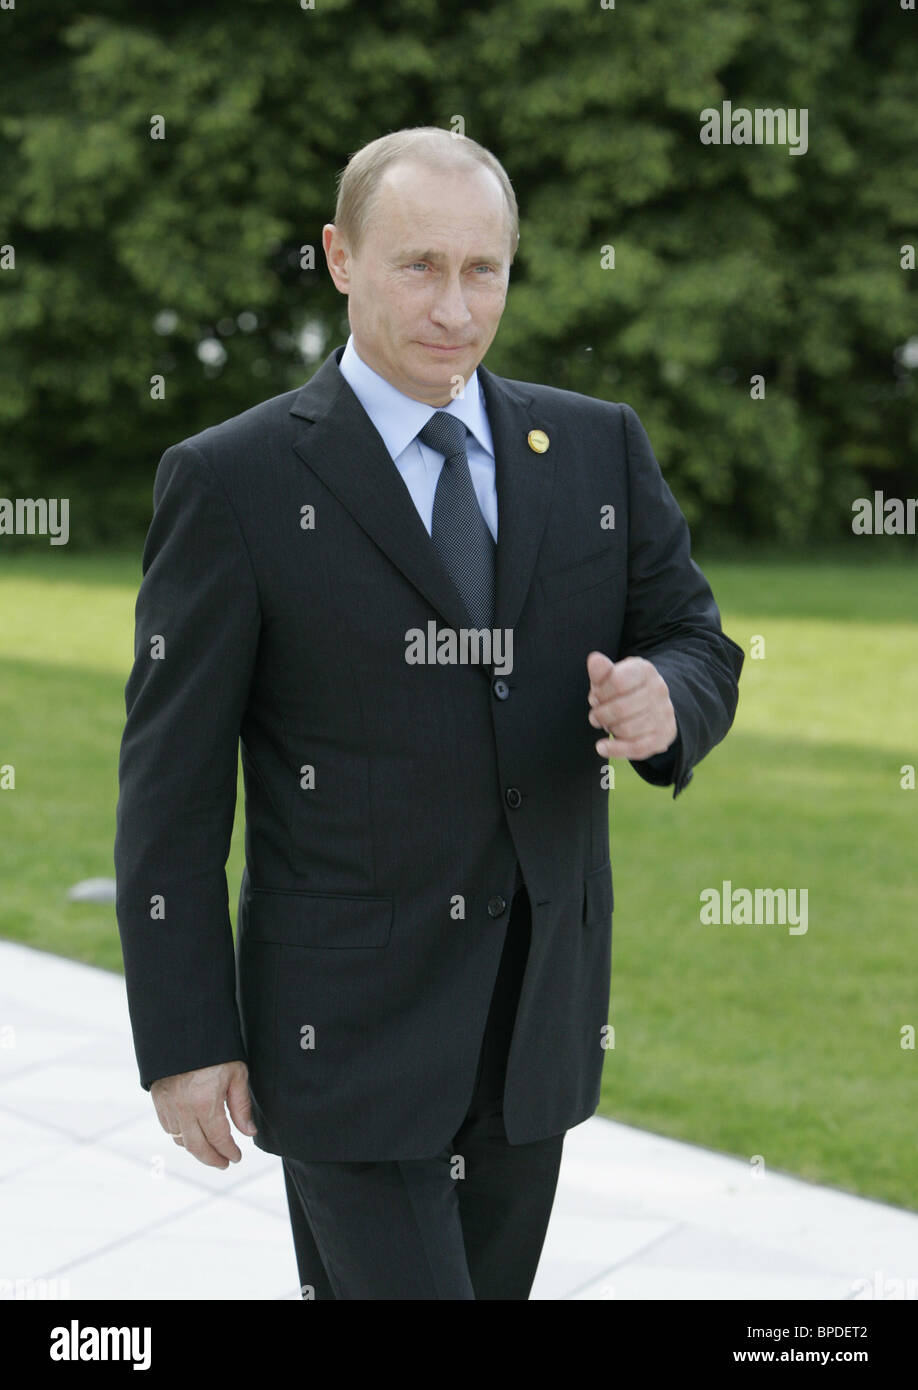 Russian President Vladimir Putin arrived for G8 summit in Germany - Stock Image